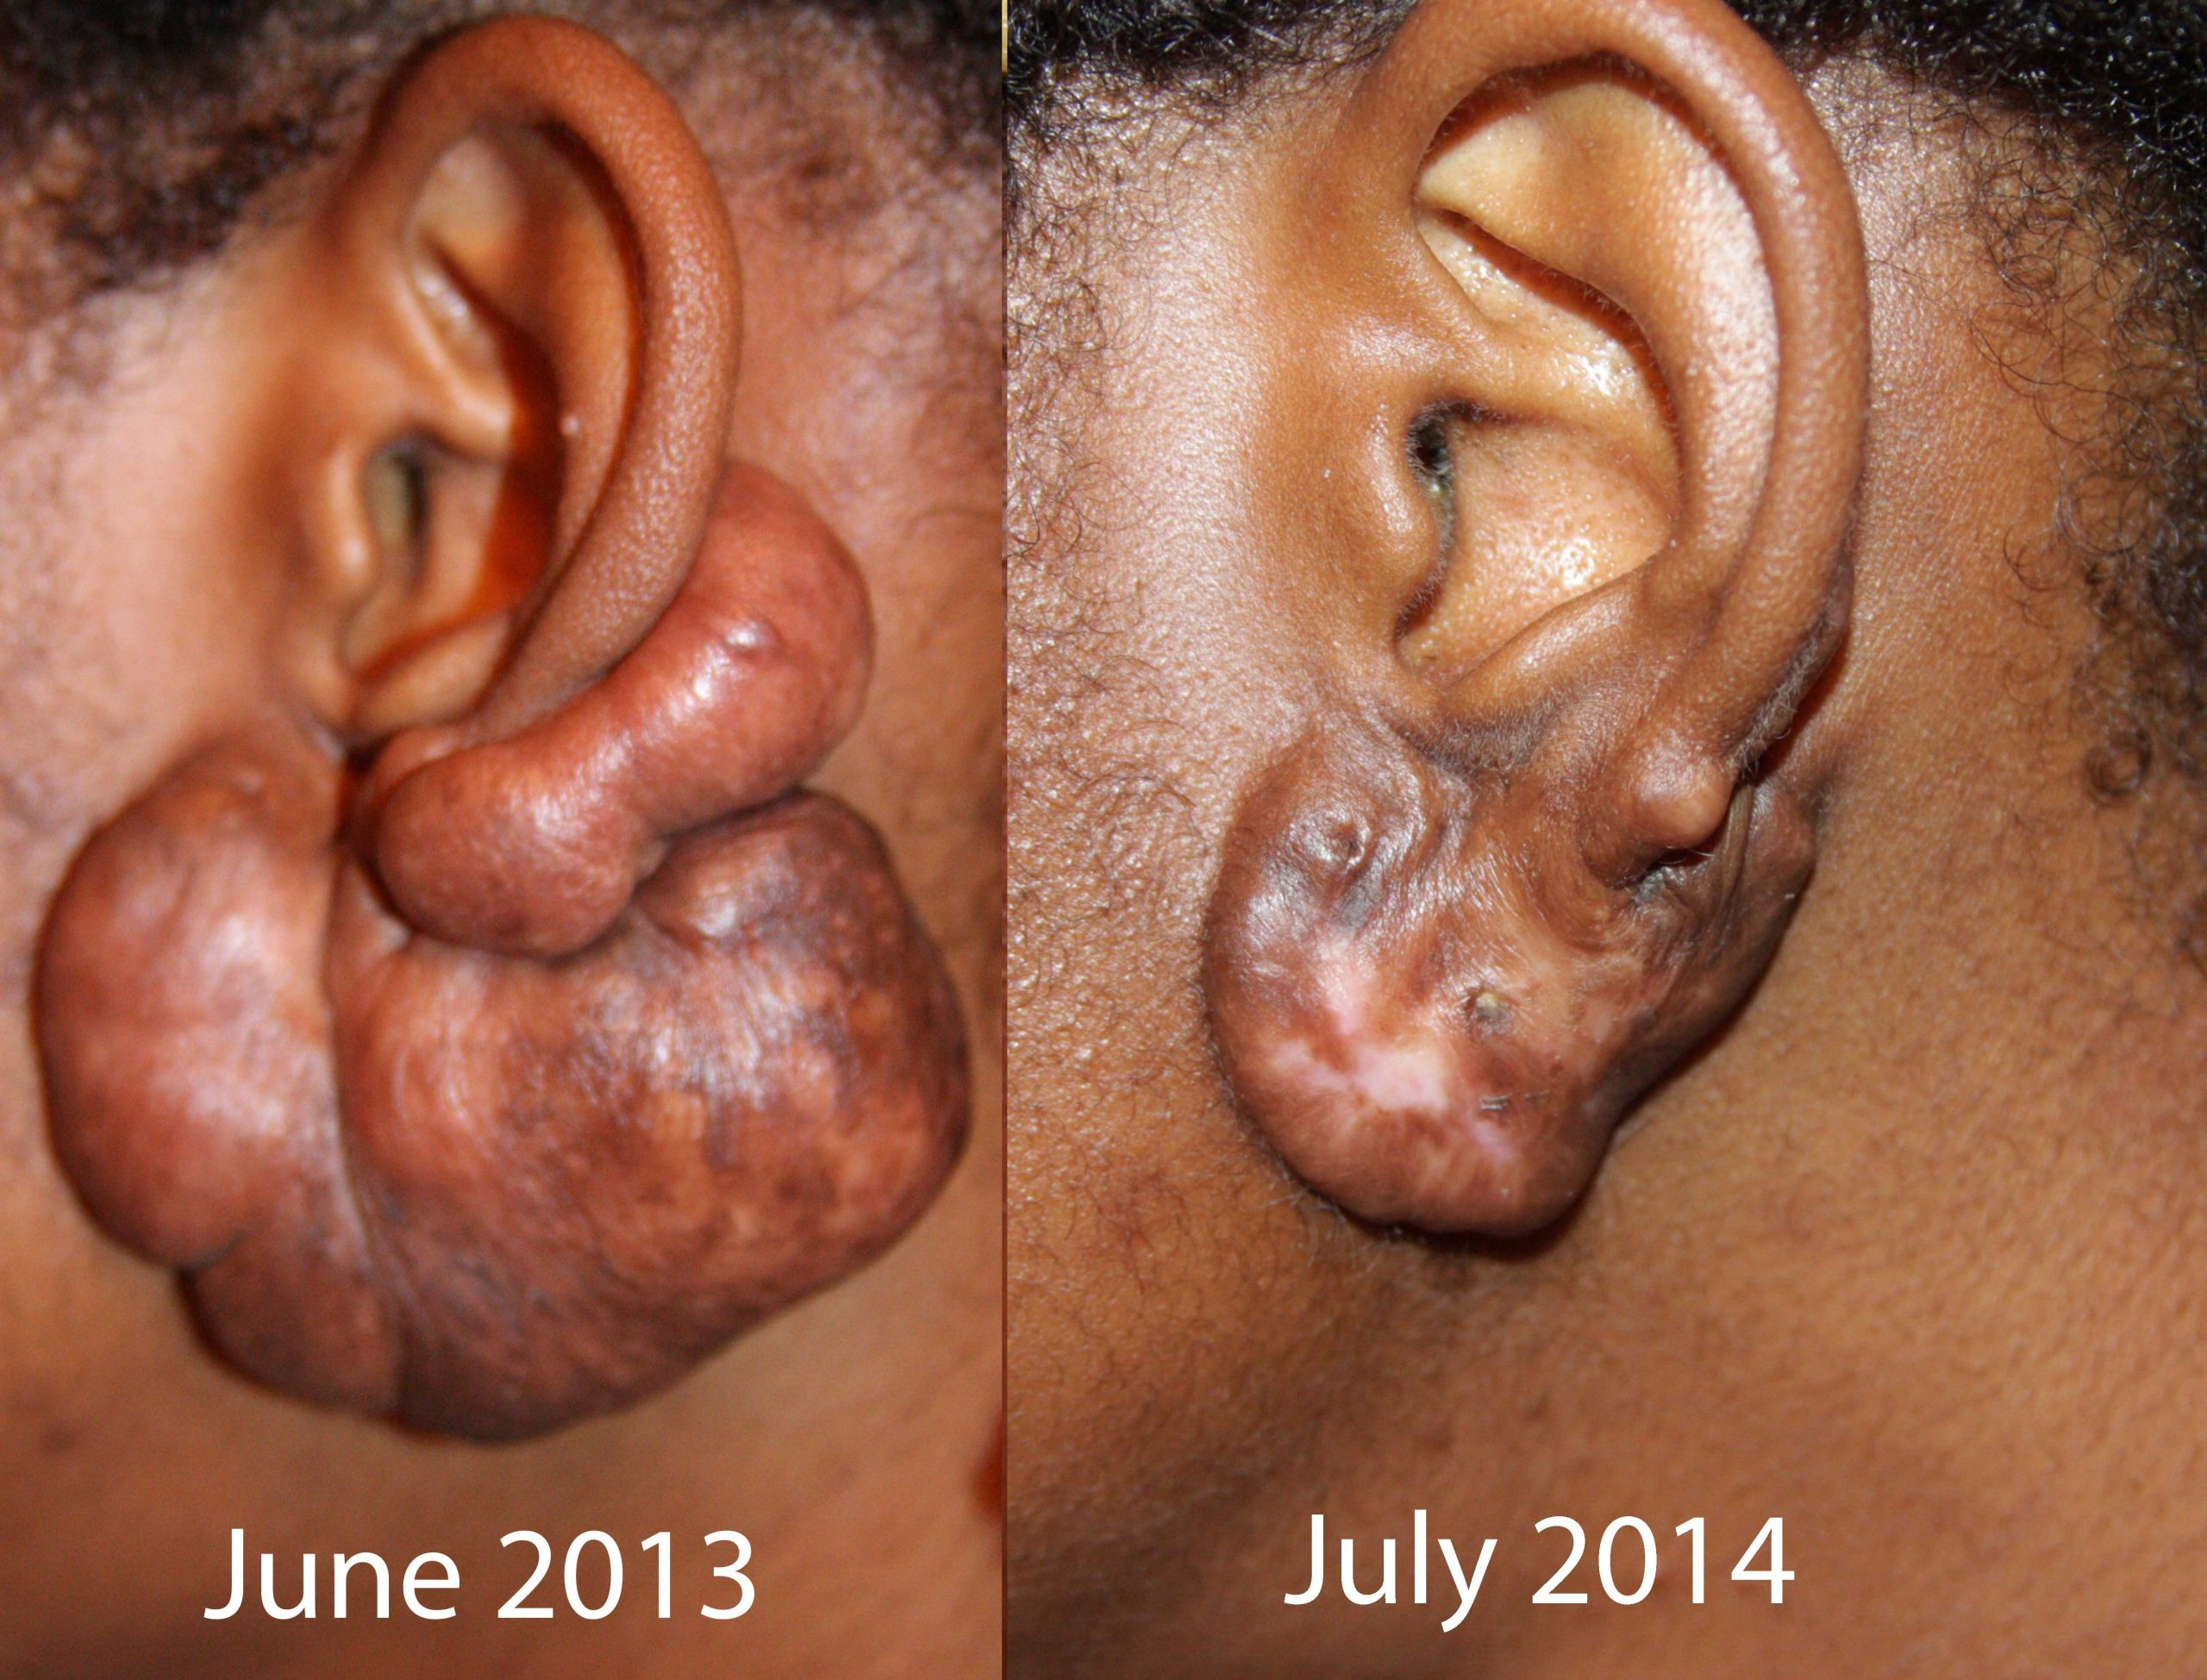 Massive Ear Keloids - Treated with Cryotherapy